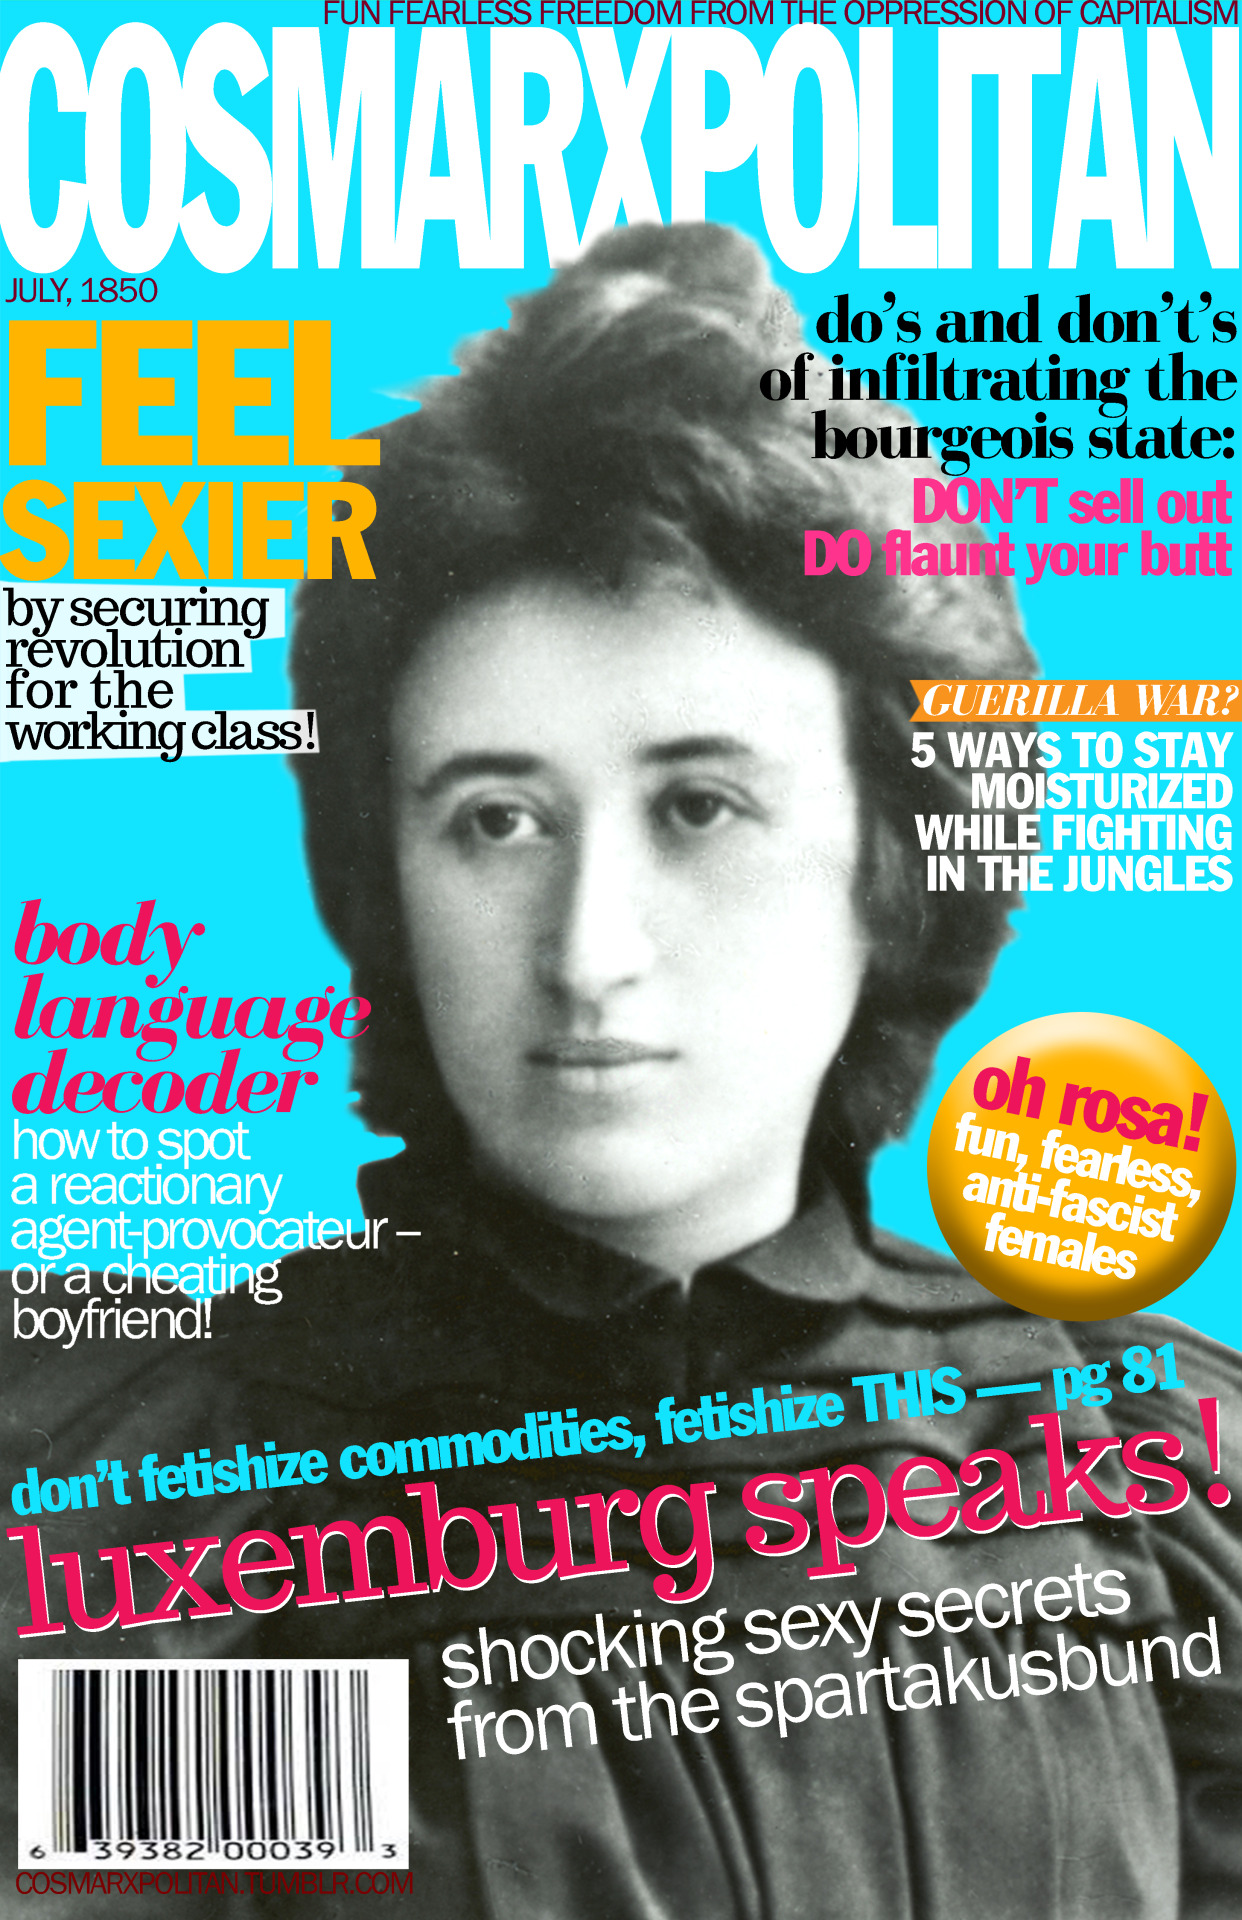 cosmarxpolitan:  Cosmarxpolitan, Issue 13 Don't fetishize commodities, fetishize THIS — pg 81